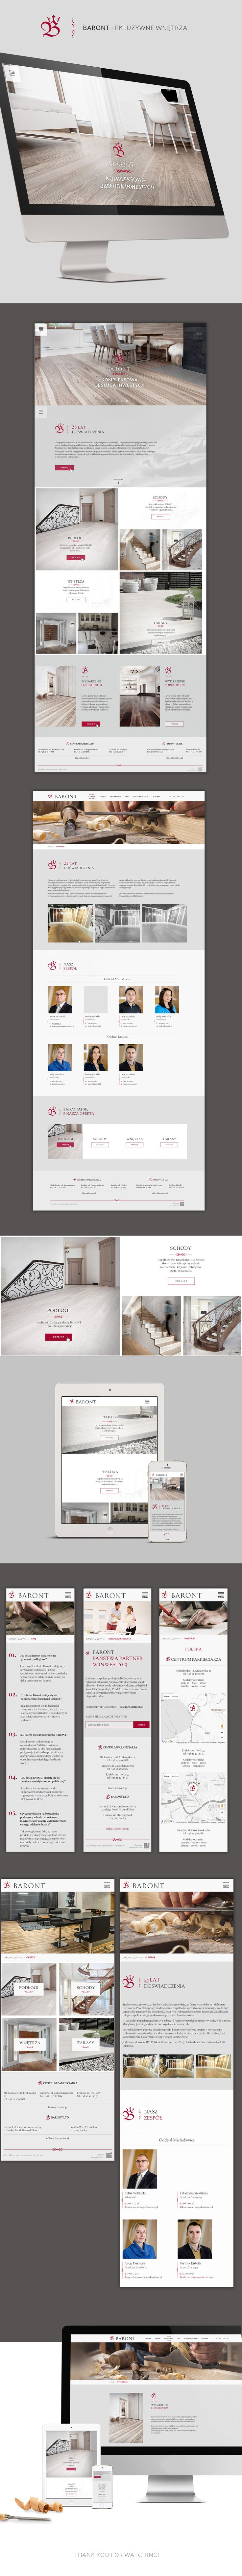 Baront is website for company with exclusive floors, floors, stairs, doors.